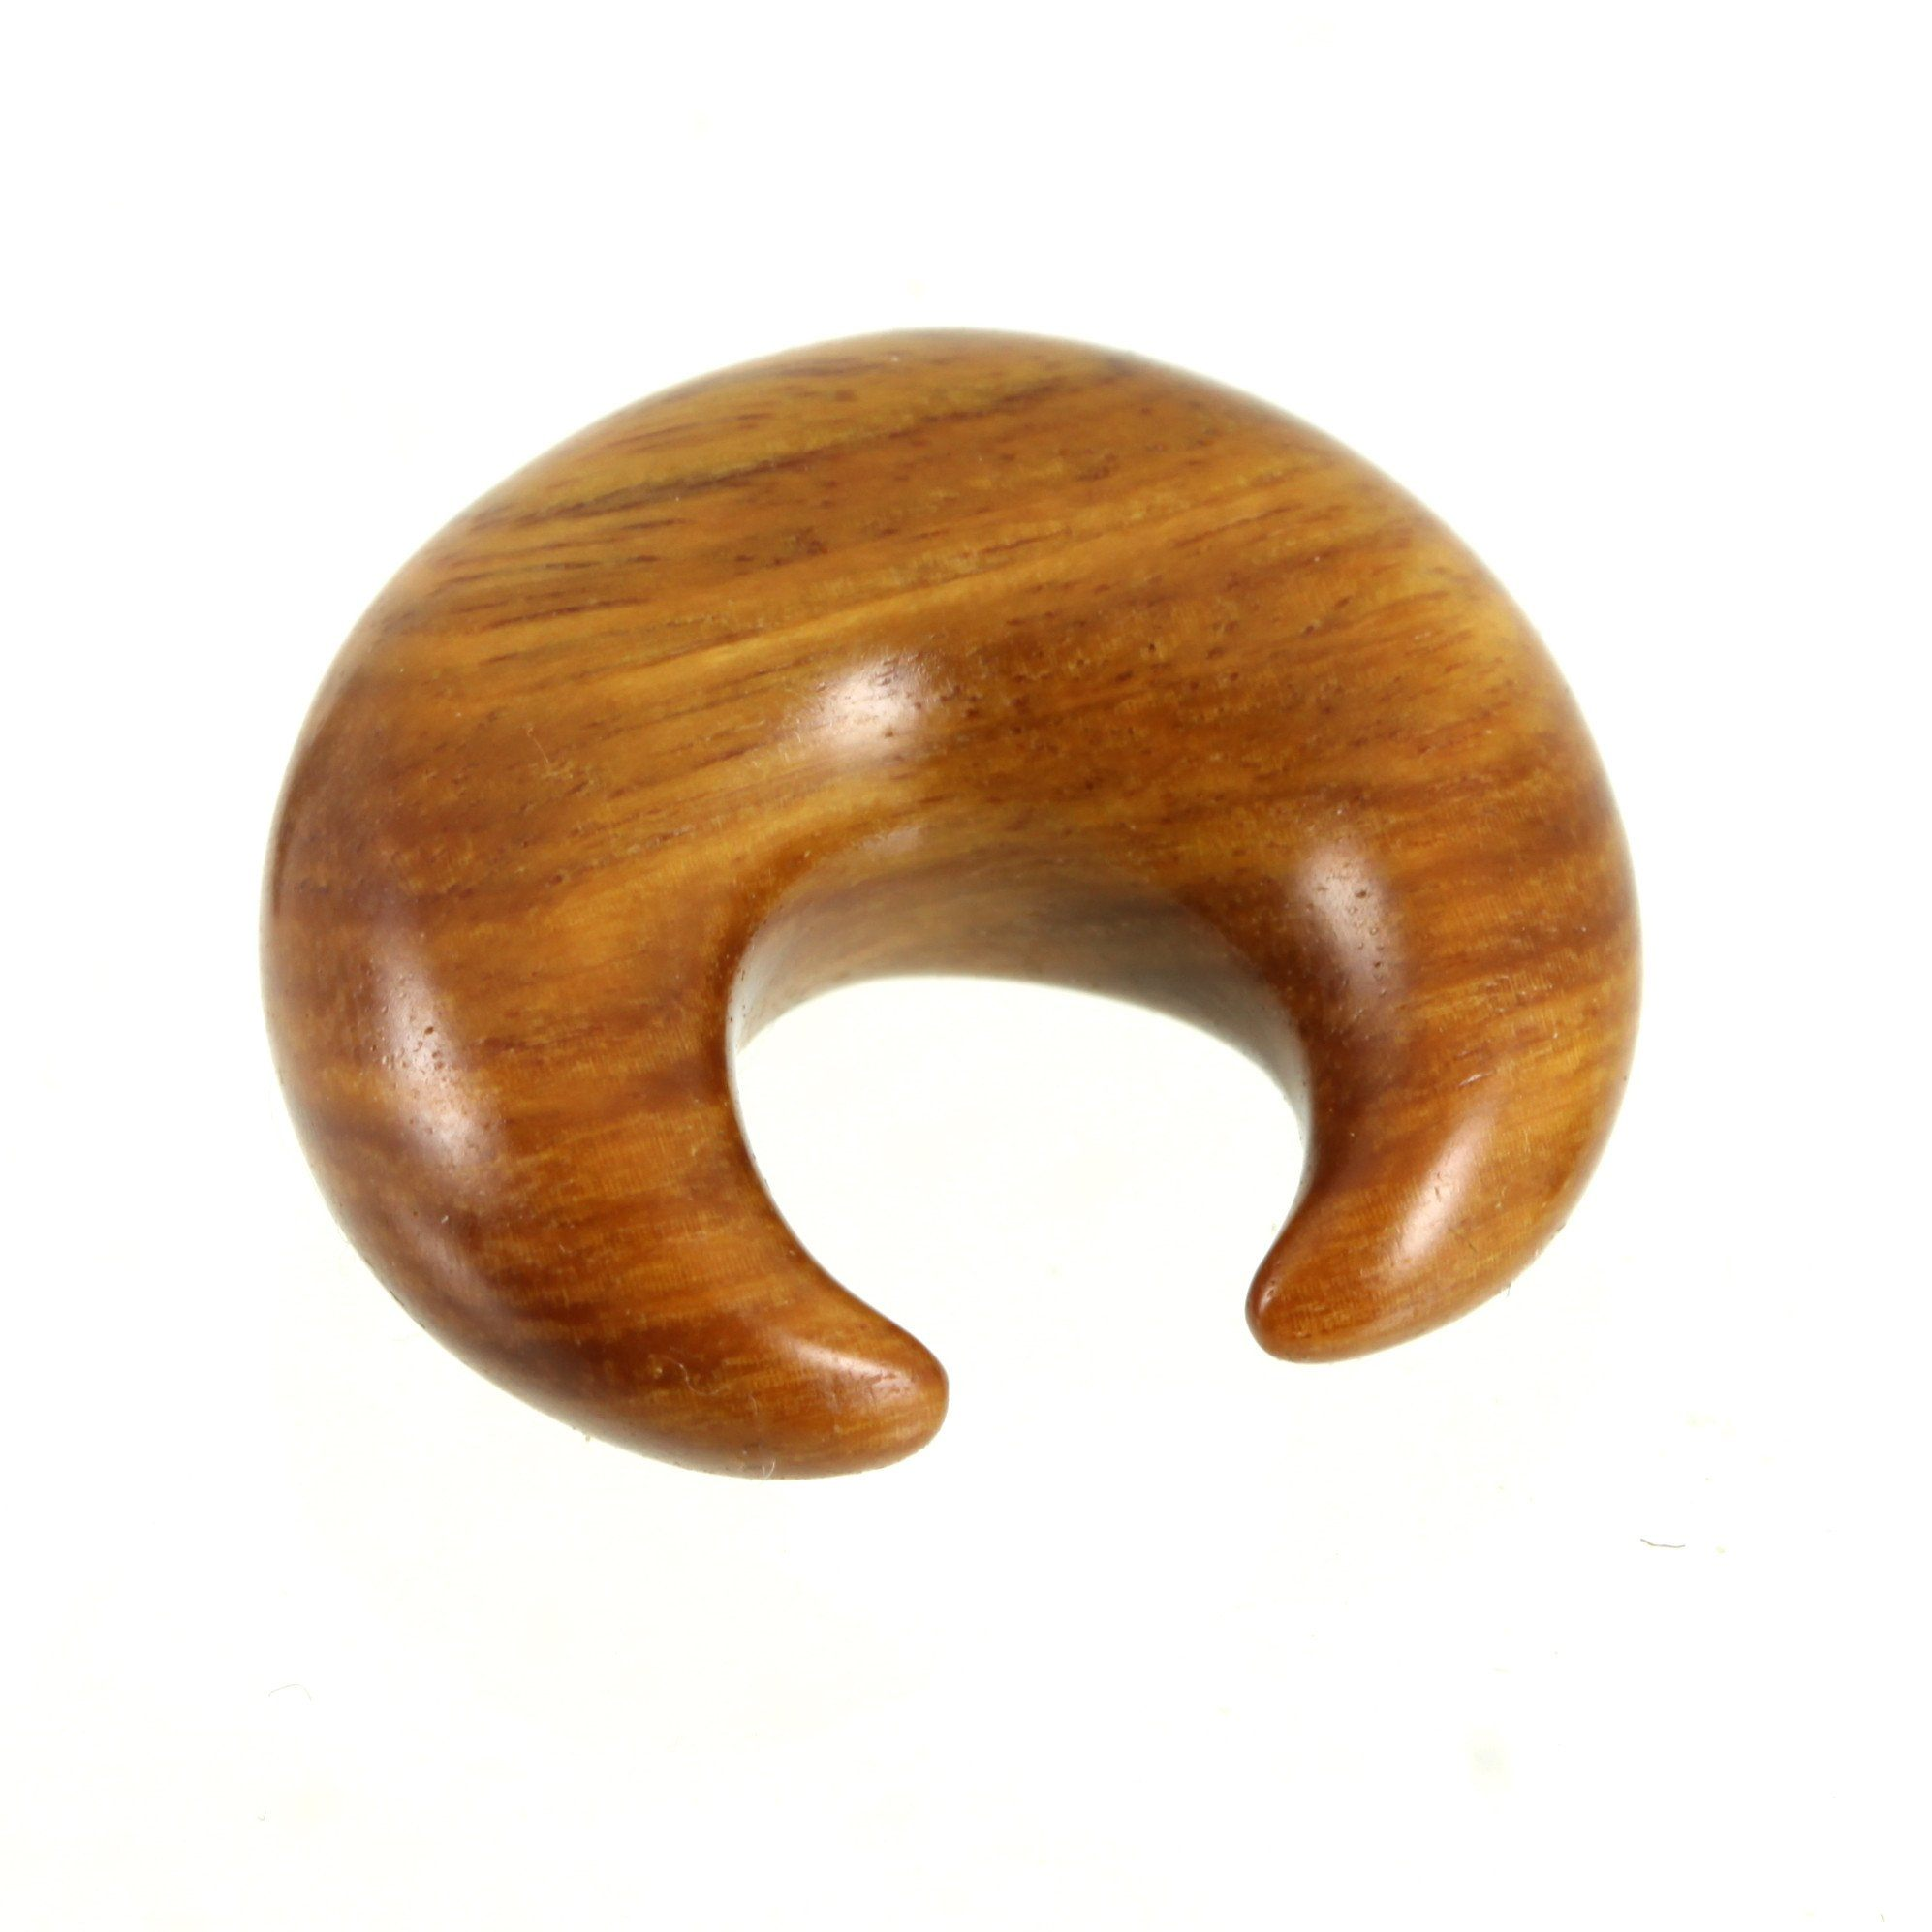 Argentine Lignum Vitae Crescent | 1 piece, jewellery, body jewellery. - Southshore Adornments